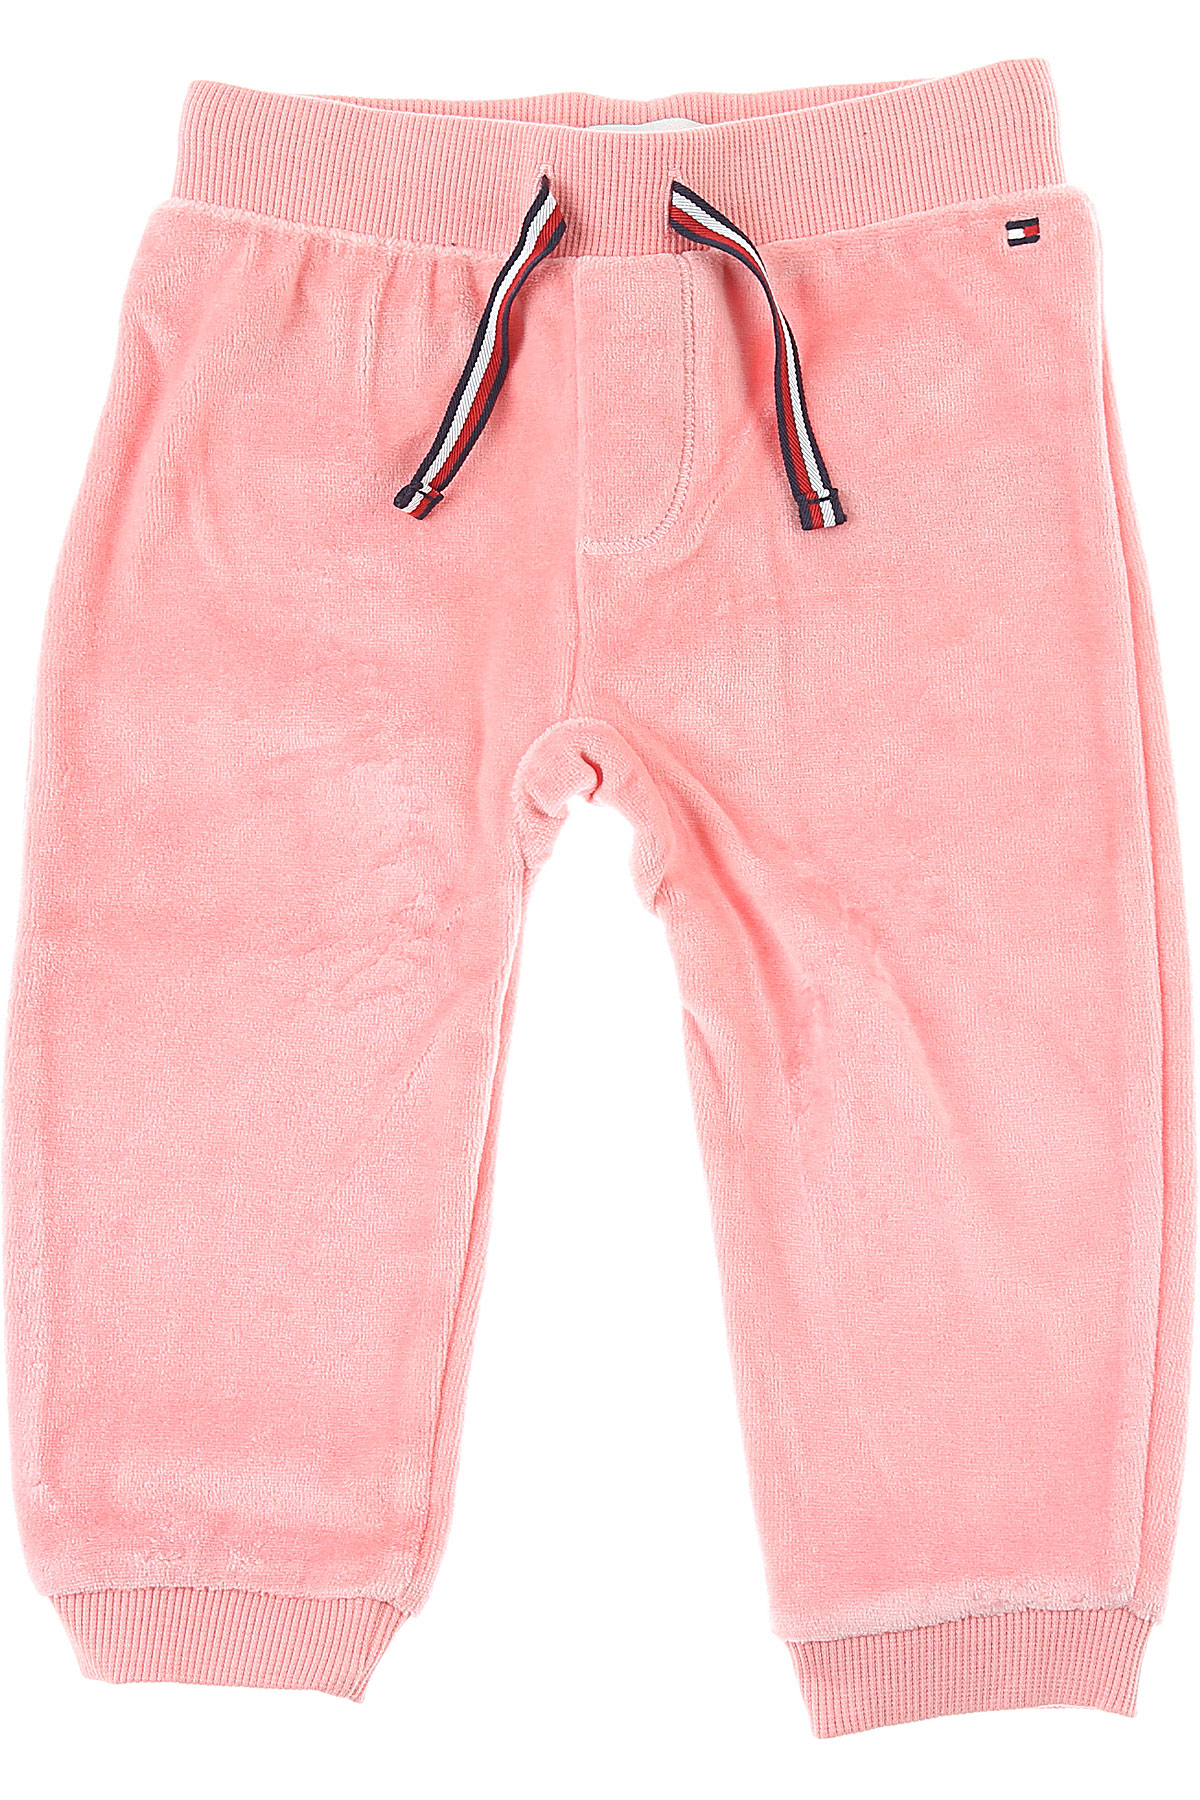 Tommy Hilfiger Baby Sweatpants for Girls On Sale, Pink, Cott, 2019, 2Y 6M 9M